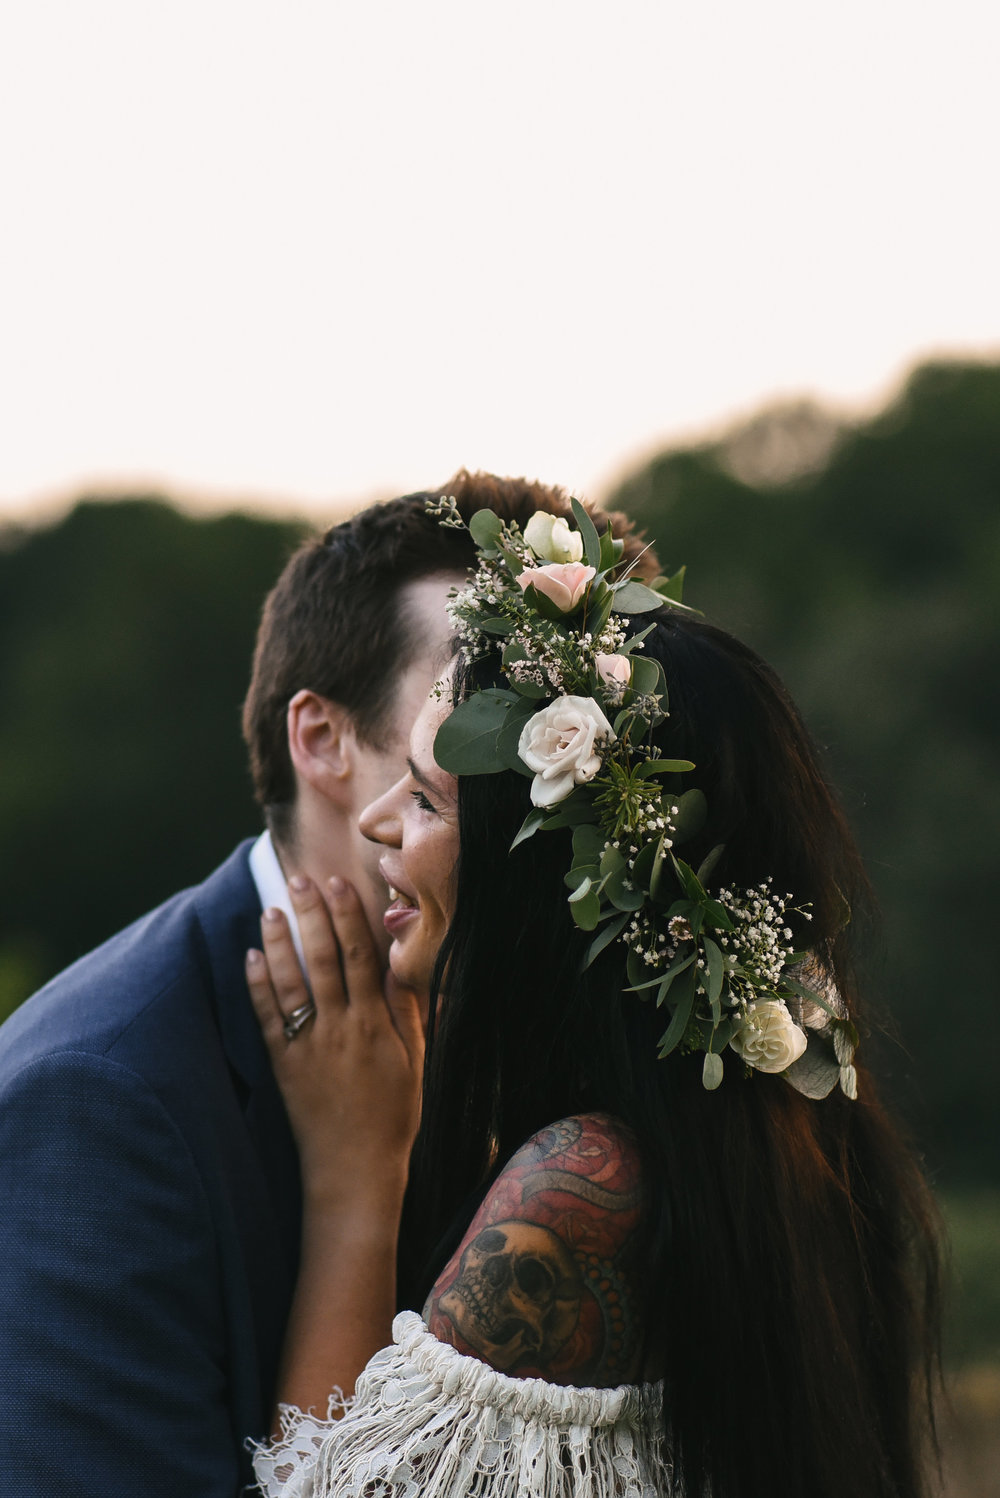 Maryland, Eastern Shore, Baltimore Wedding Photographer, Romantic, Boho, Backyard Wedding, Nature, Groom Kissing Bride on the Cheek, Michael Designs Florist, Bride Smiling with Groom, Flower Crown, Tattooed Bride